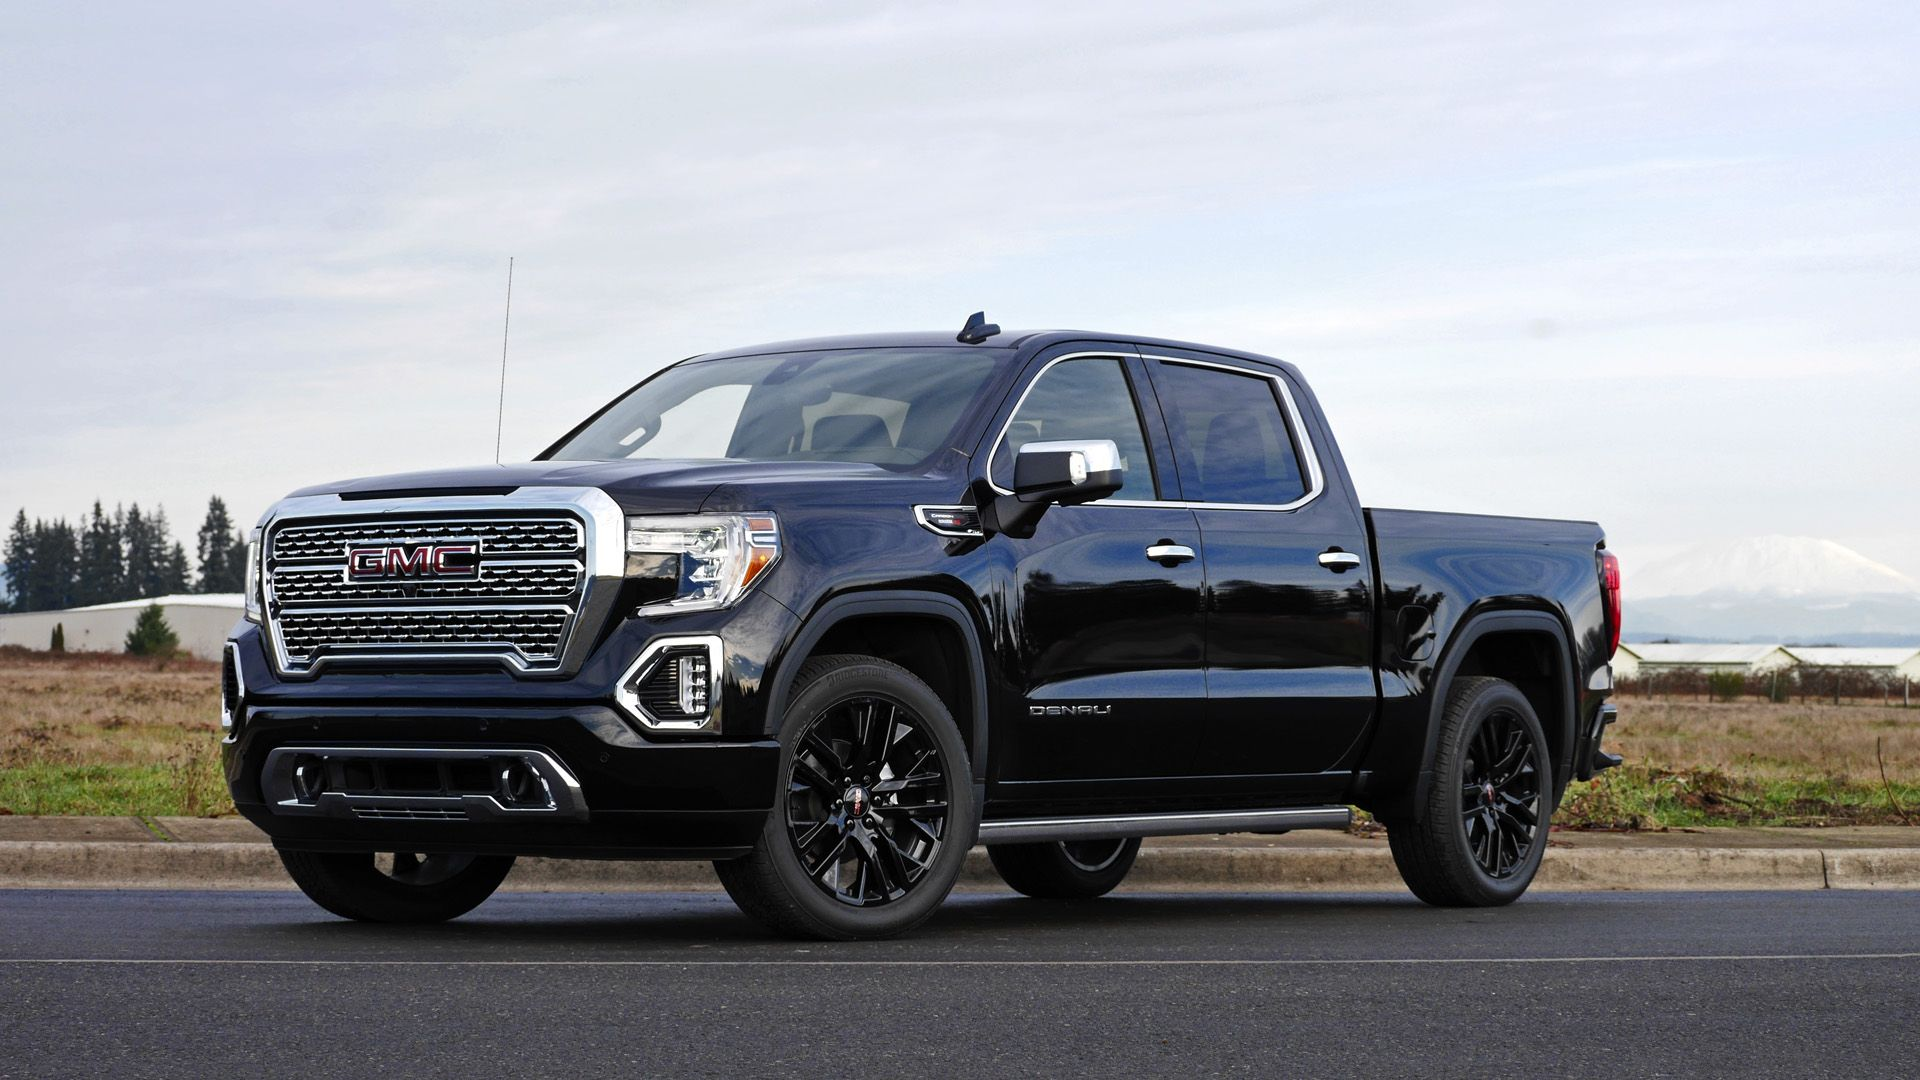 2020 Gmc Sierra 1500 Review Price Specs Features And Photos In 2020 Gmc Sierra 1500 Gmc Sierra Sierra Denali